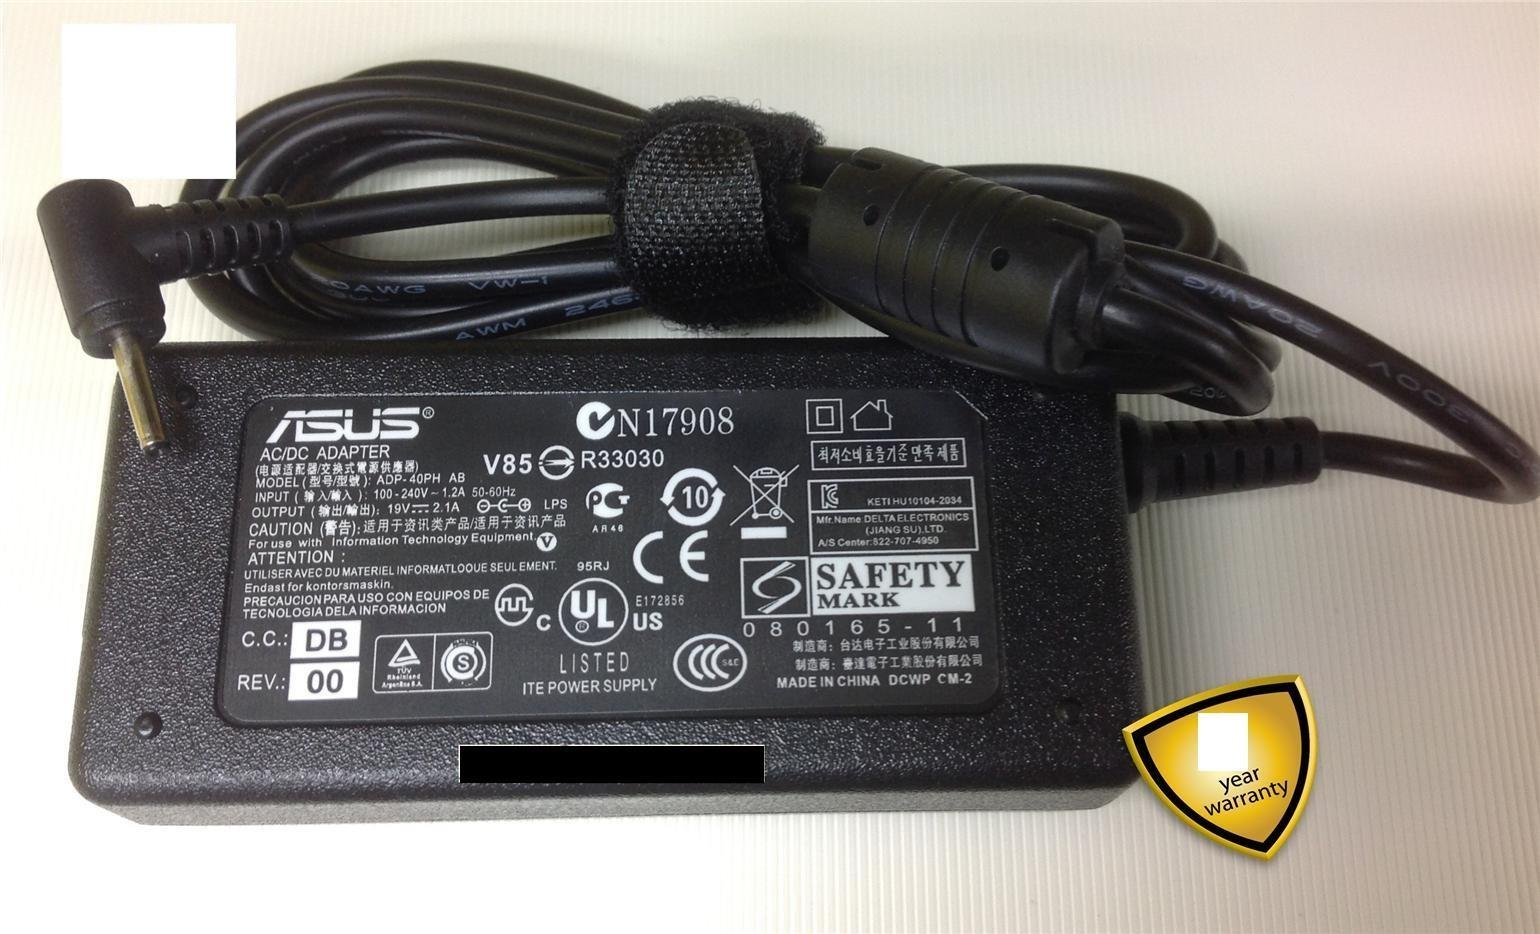 ASUS 1015B 1015HA 1015BX X101 X101H X101CH Power Adapter Charger